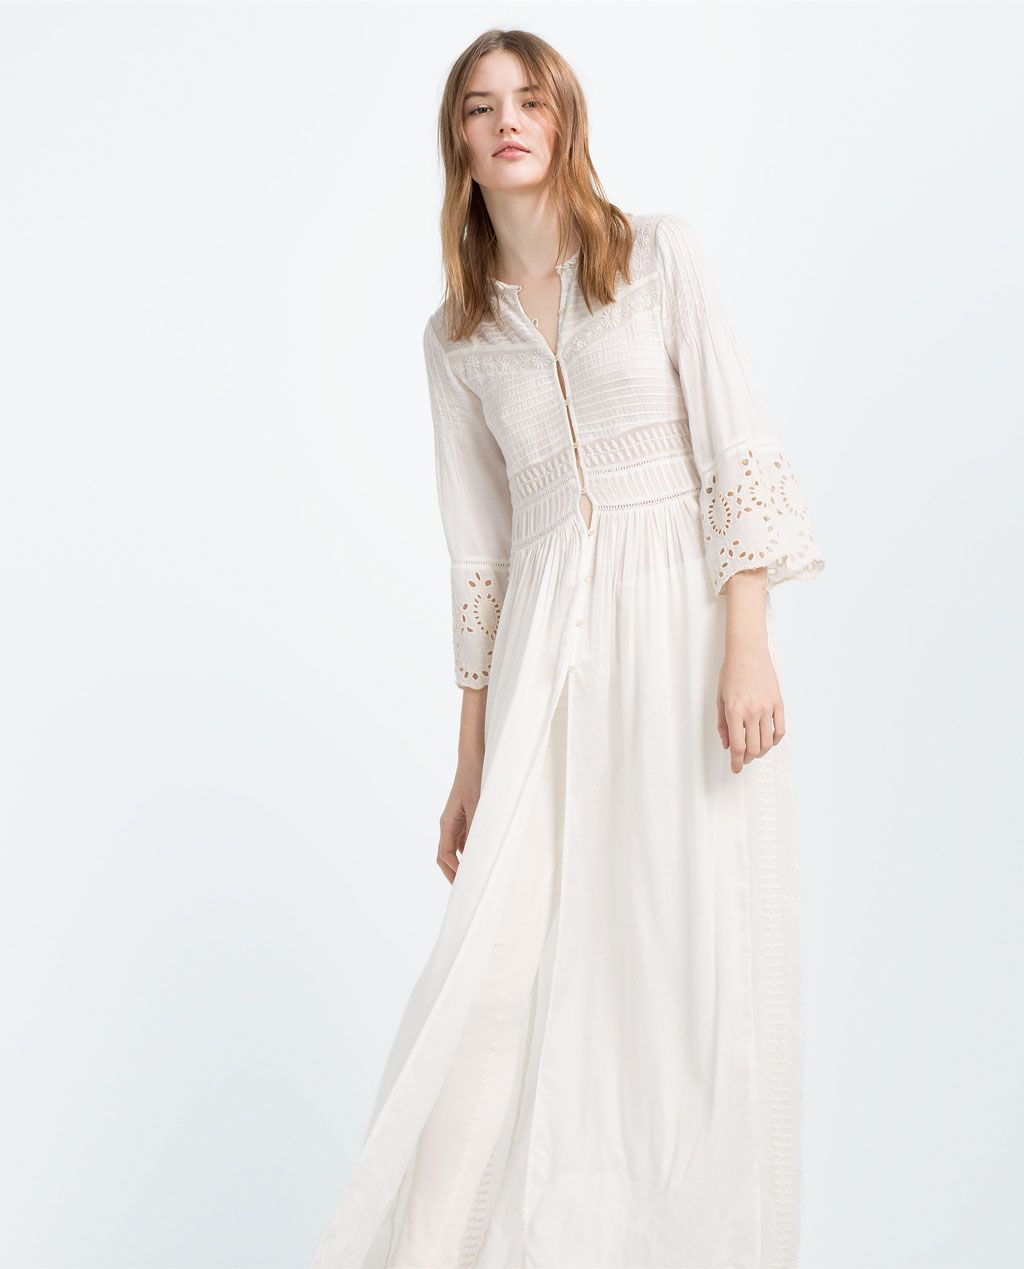 a576d4873ec EMBROIDERED FLOWING ROBE-Maxi-DRESSES-WOMAN